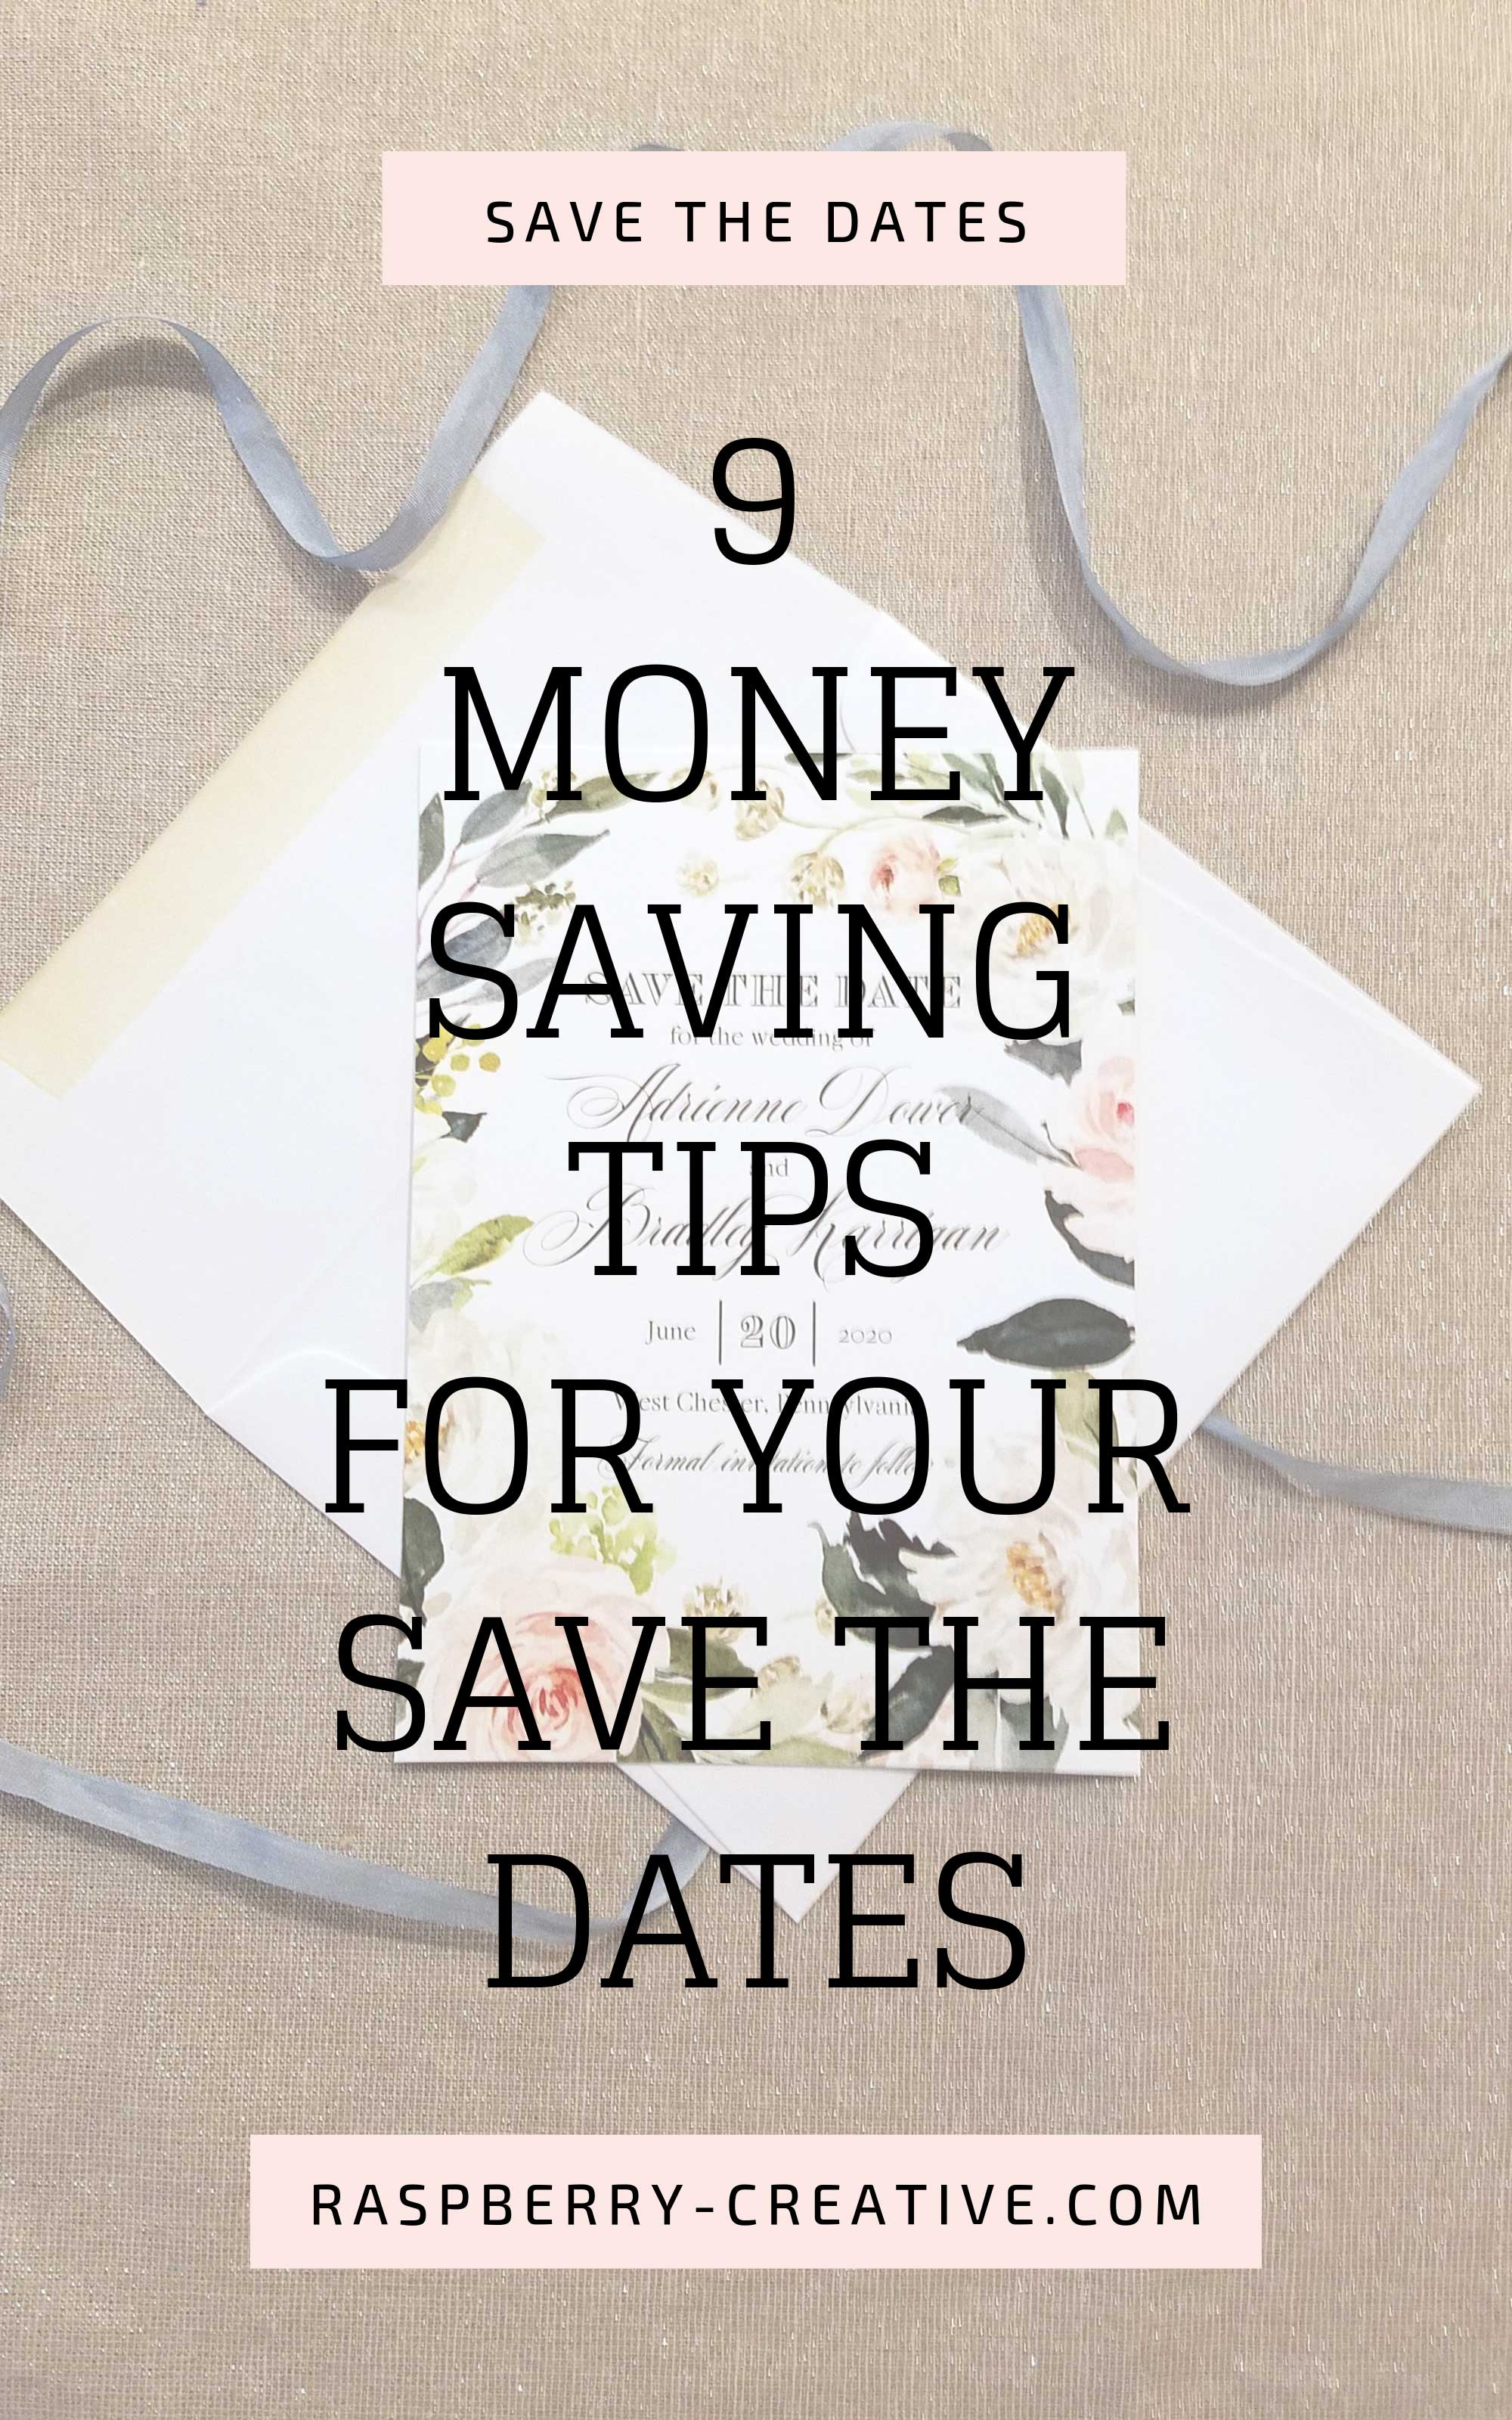 9-money-saving-tips-for-your-save-the-dates